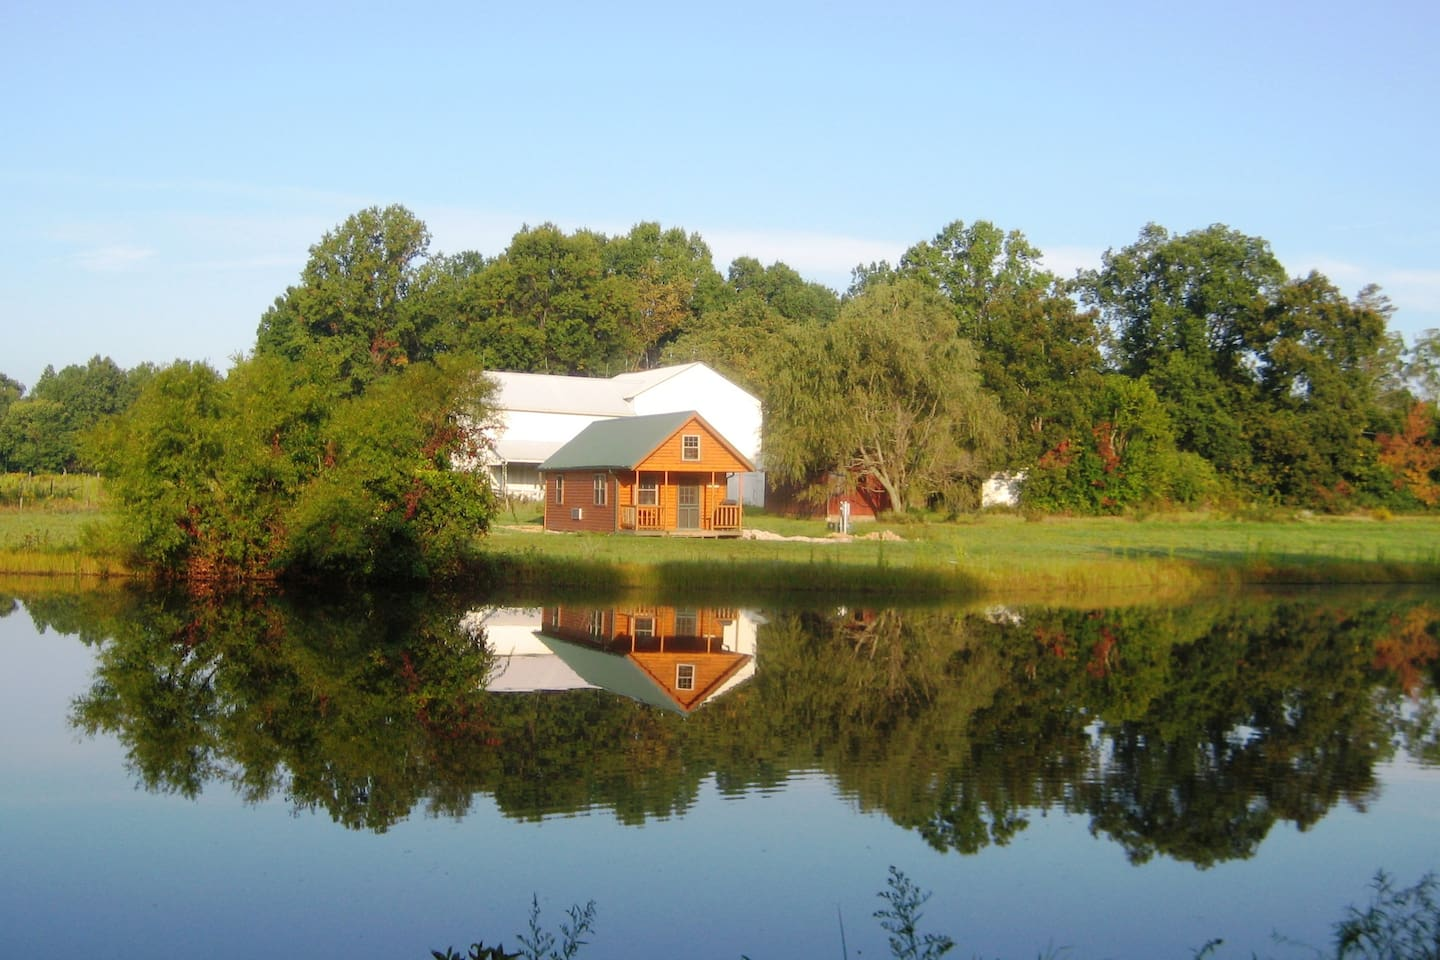 Imagine yourself in the peace of the morning at Shepherd's Bridge in the log cabin